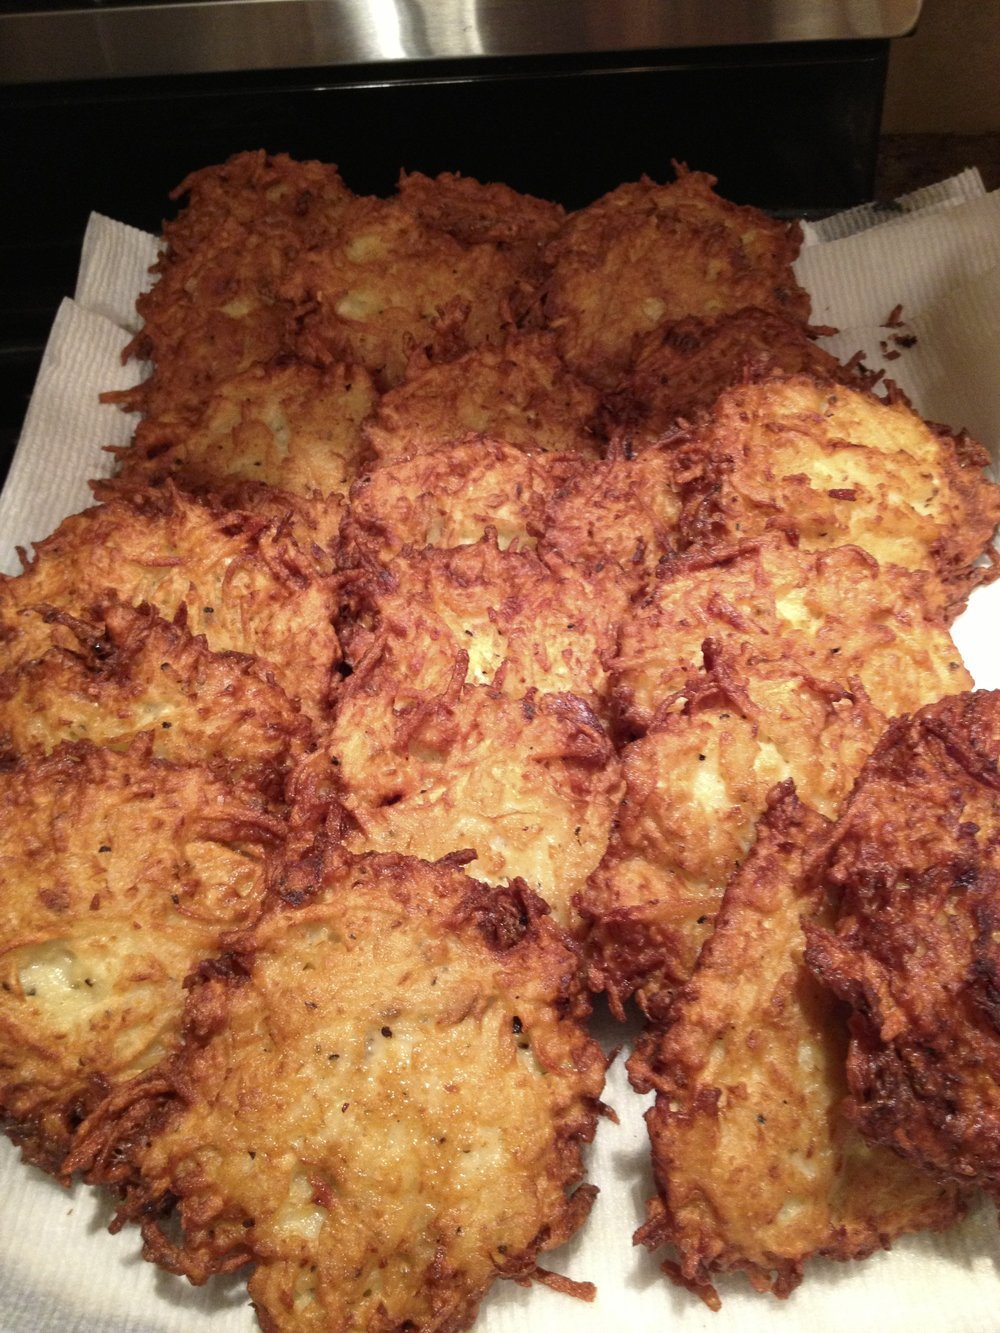 Crispy potato latkes are basically large (and tastier) hash browns.